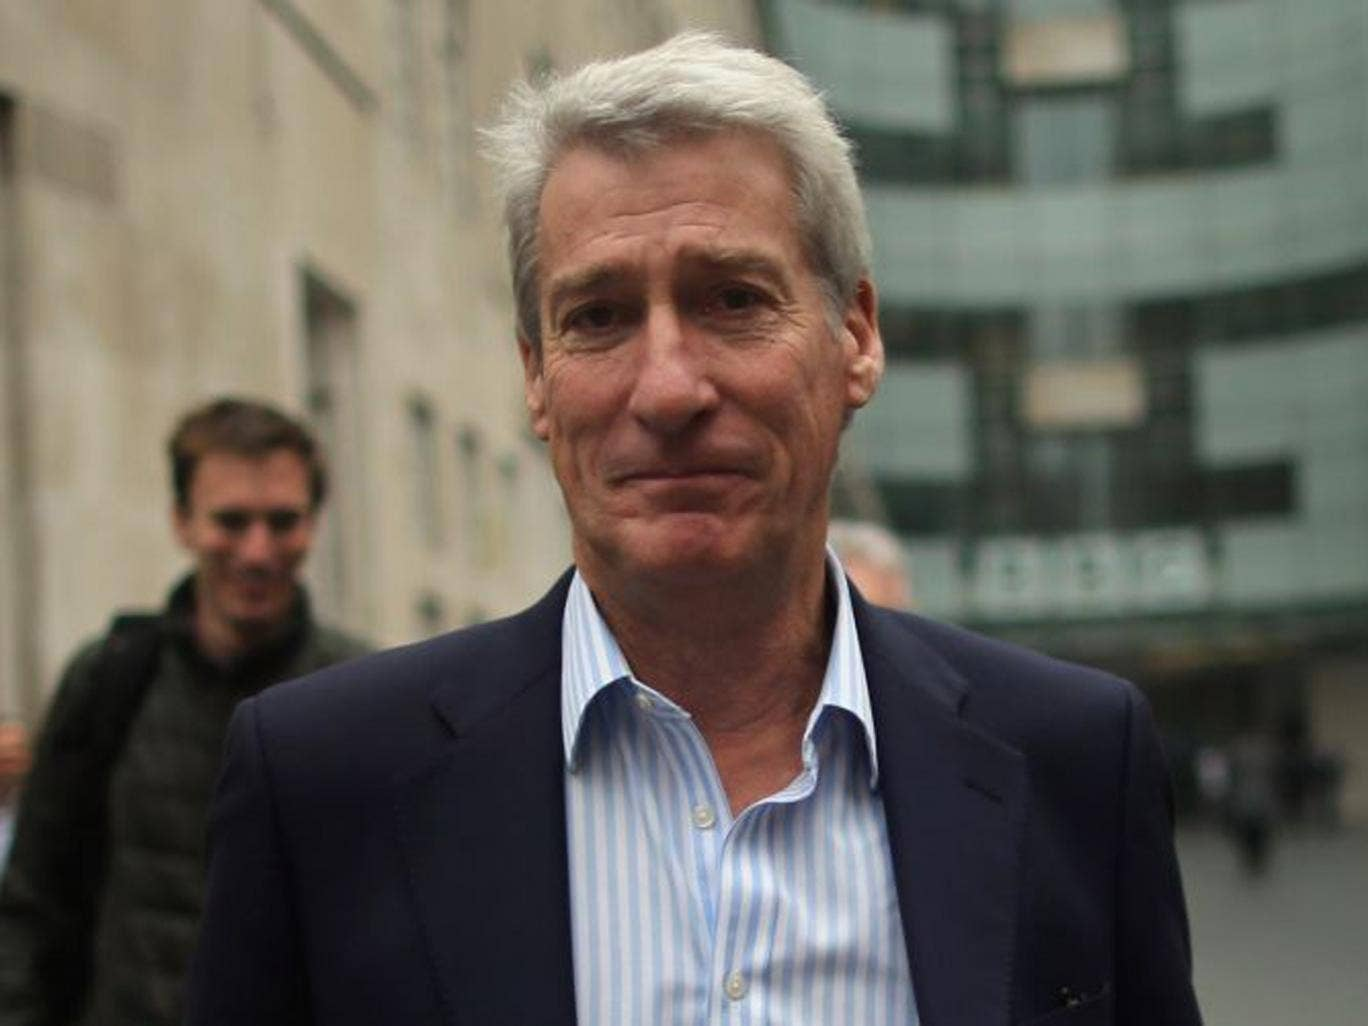 Jeremy Paxman has admitted he is a 'one-nation Tory' and complained that Newsnight is made by idealistic '13-year-olds' who foolishly think they can 'change the world'.